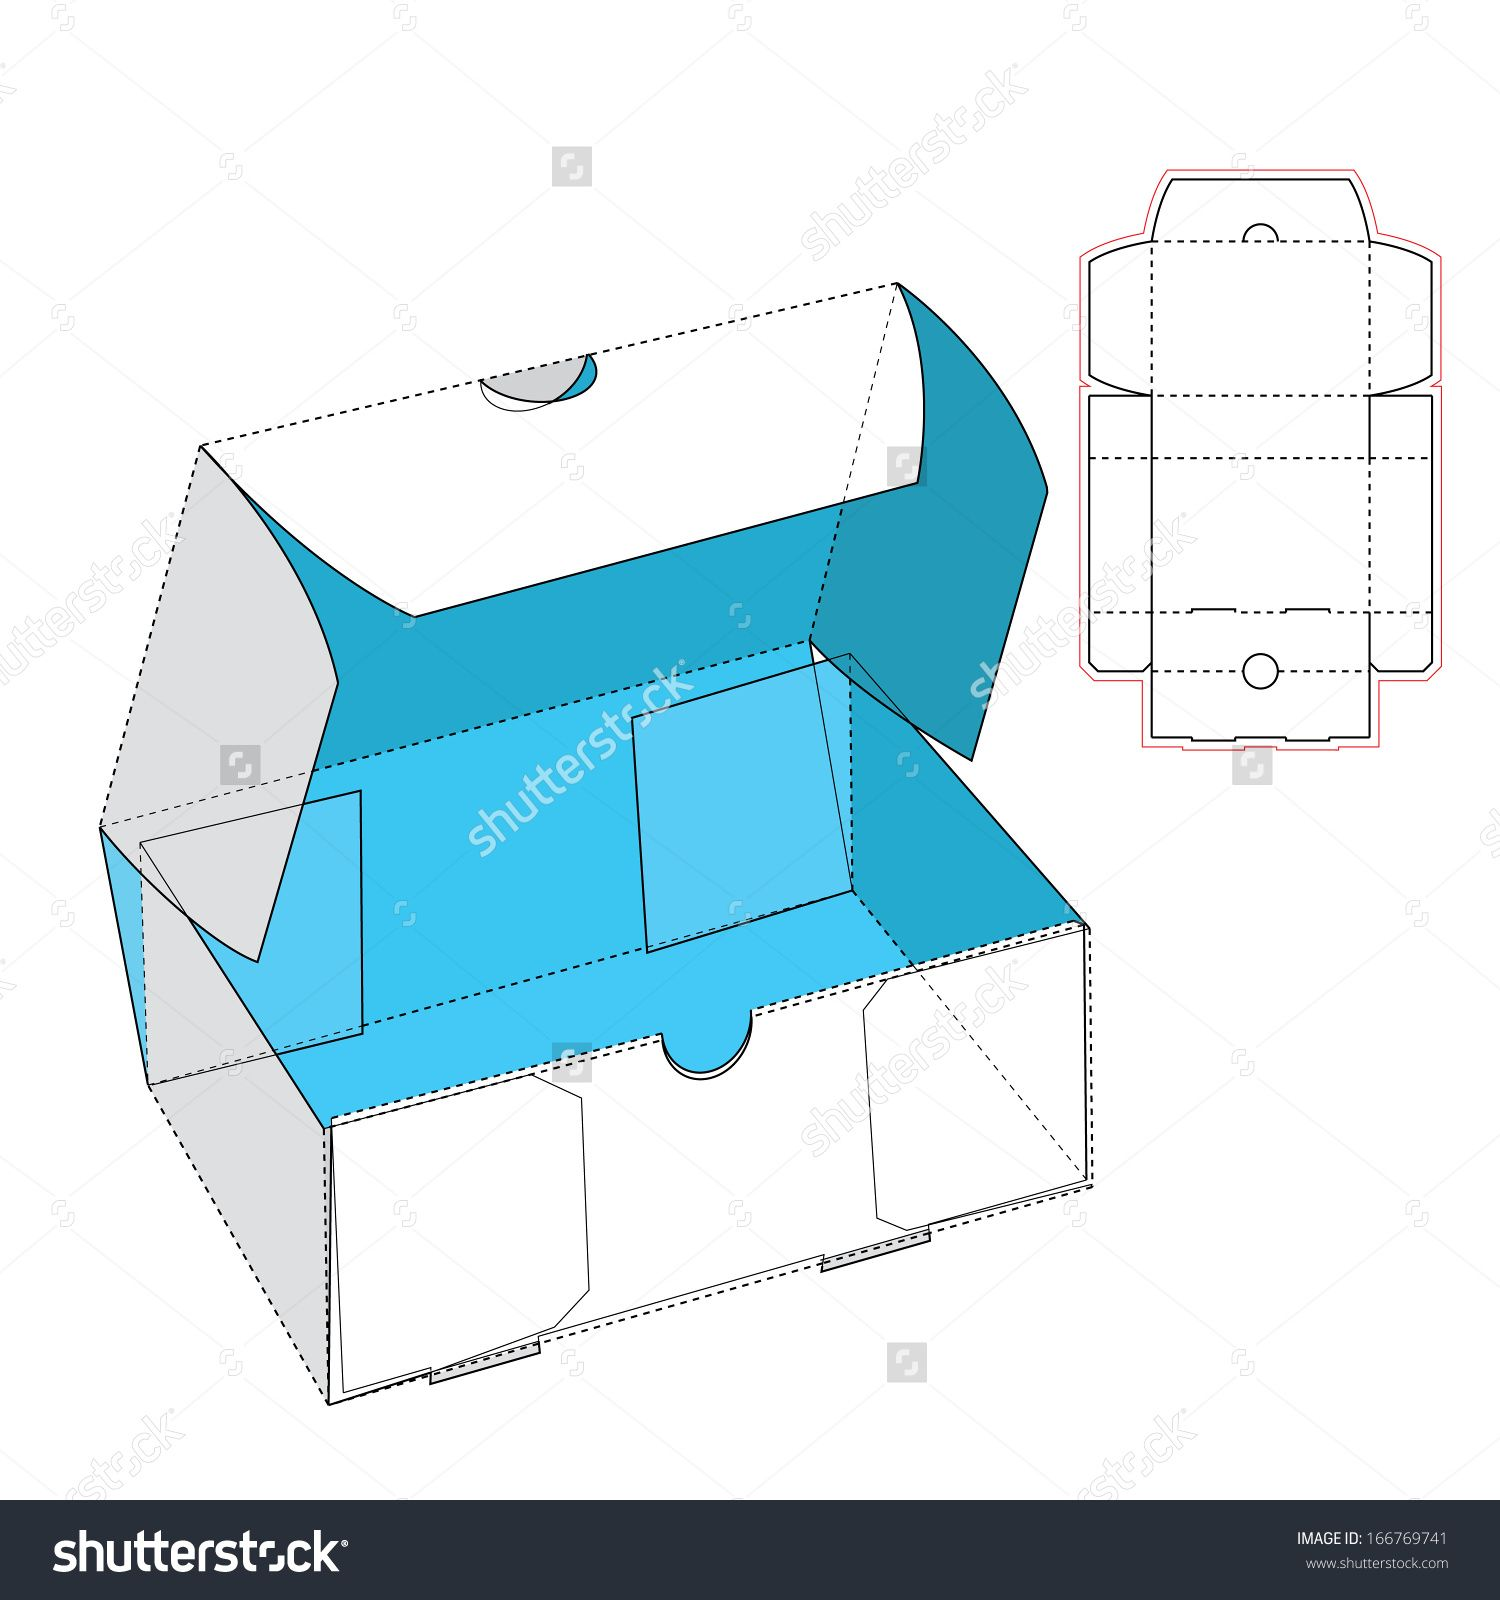 Box with flip lid and blueprint layout stock vector illustration box with flip lid and blueprint layout stock vector illustration 166769741 shutterstock malvernweather Gallery